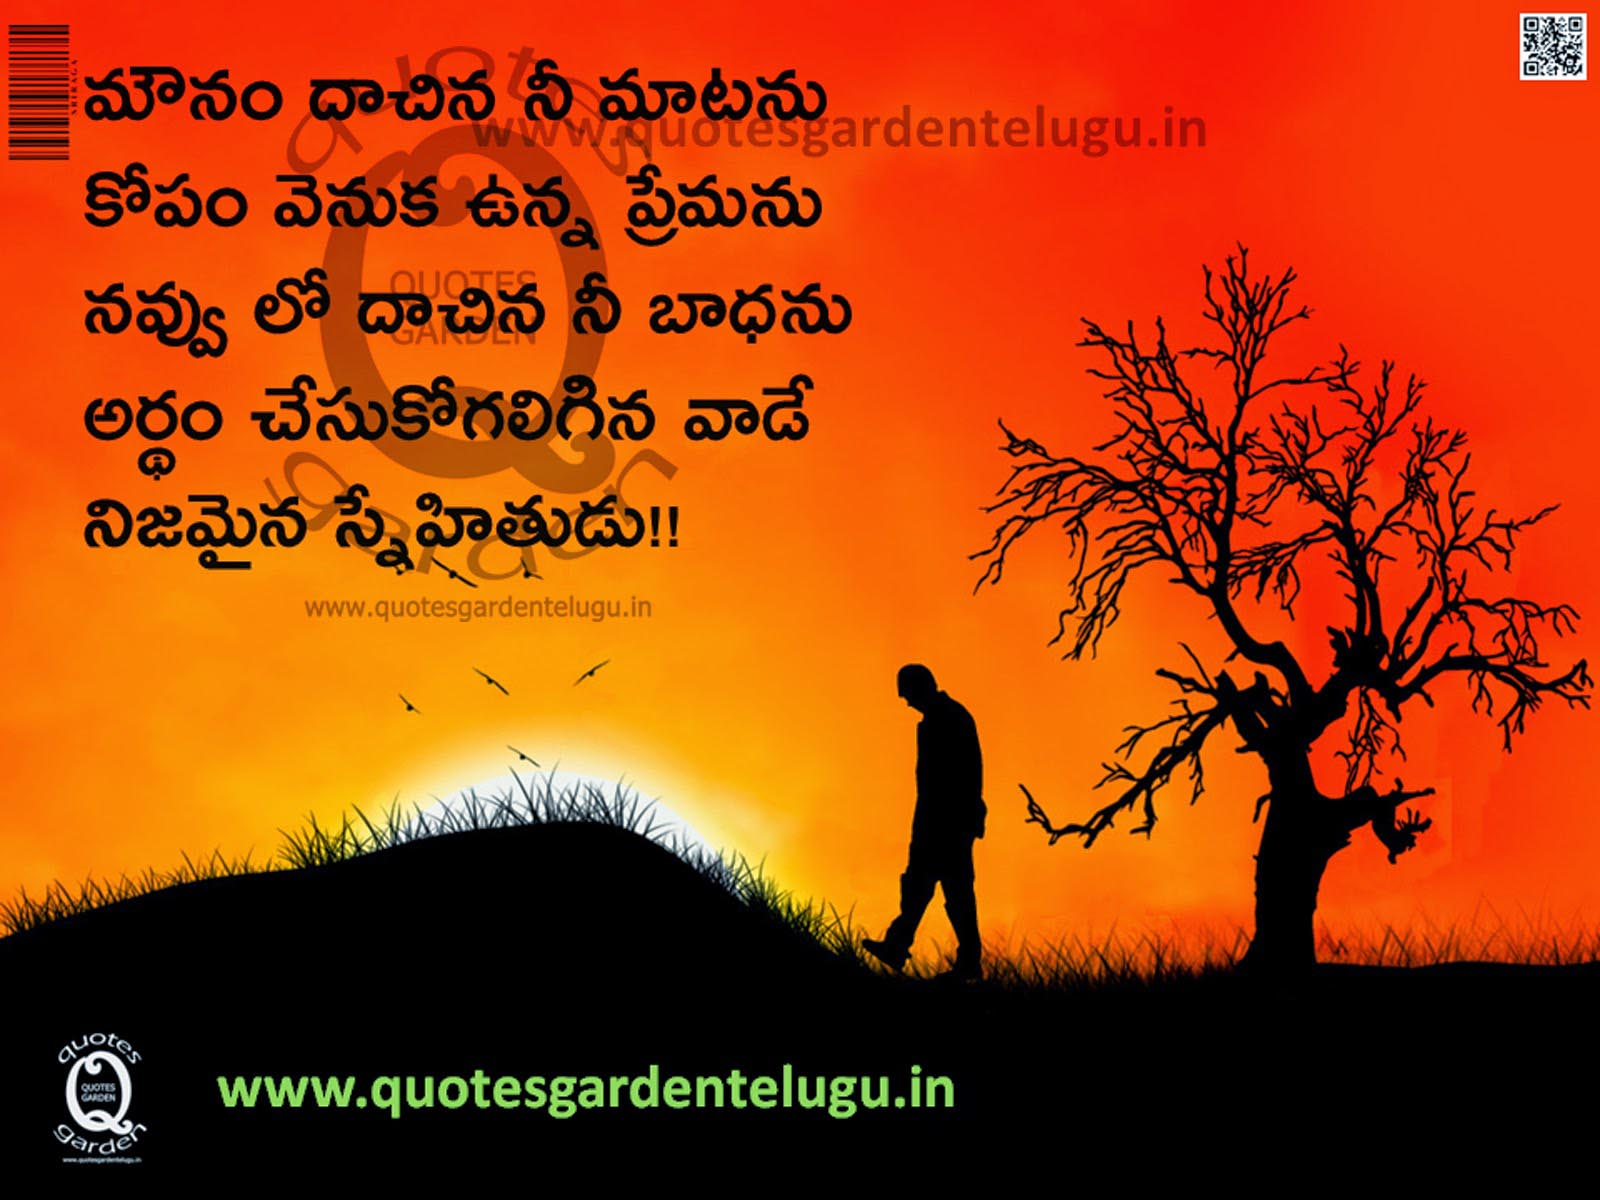 Best Quotes About Friendship In Telugu